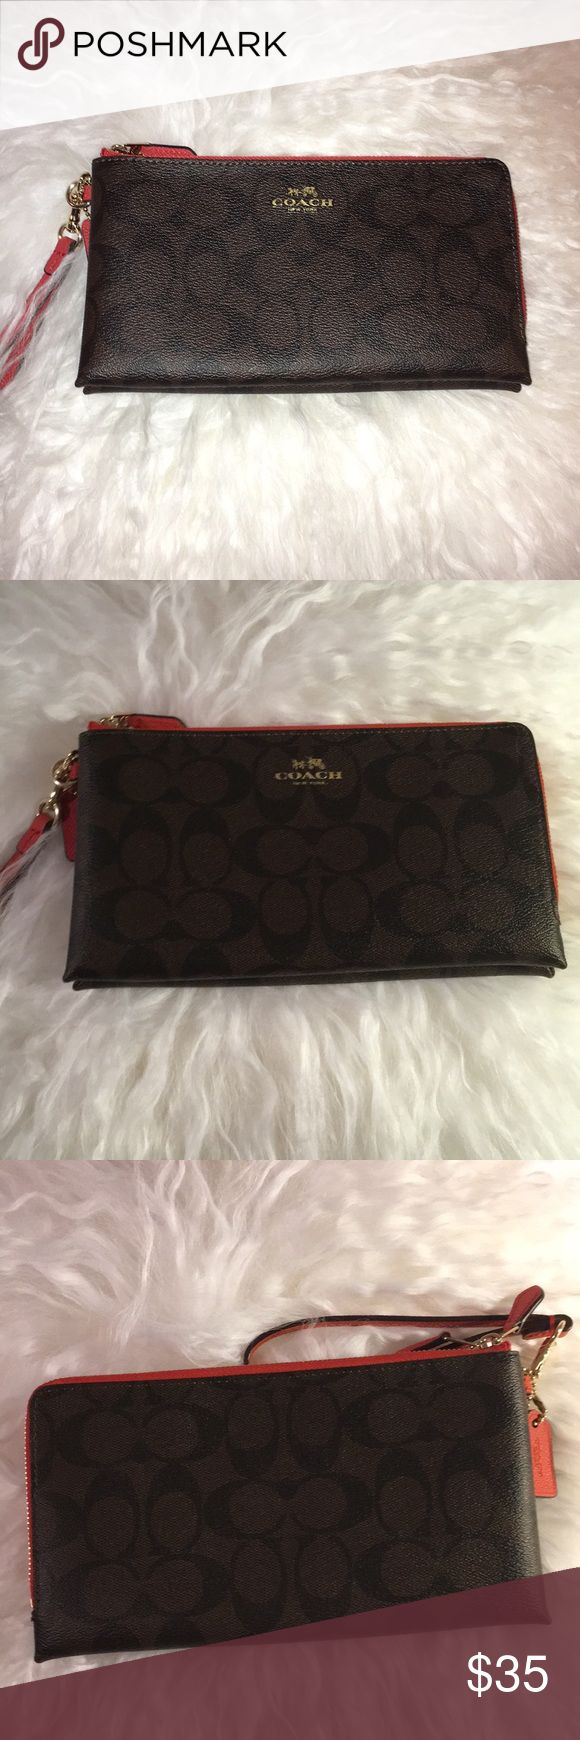 Double coach clutch Super cool double coach clutch with red zipper. Also wrist loop. Never worn. Coach Bags